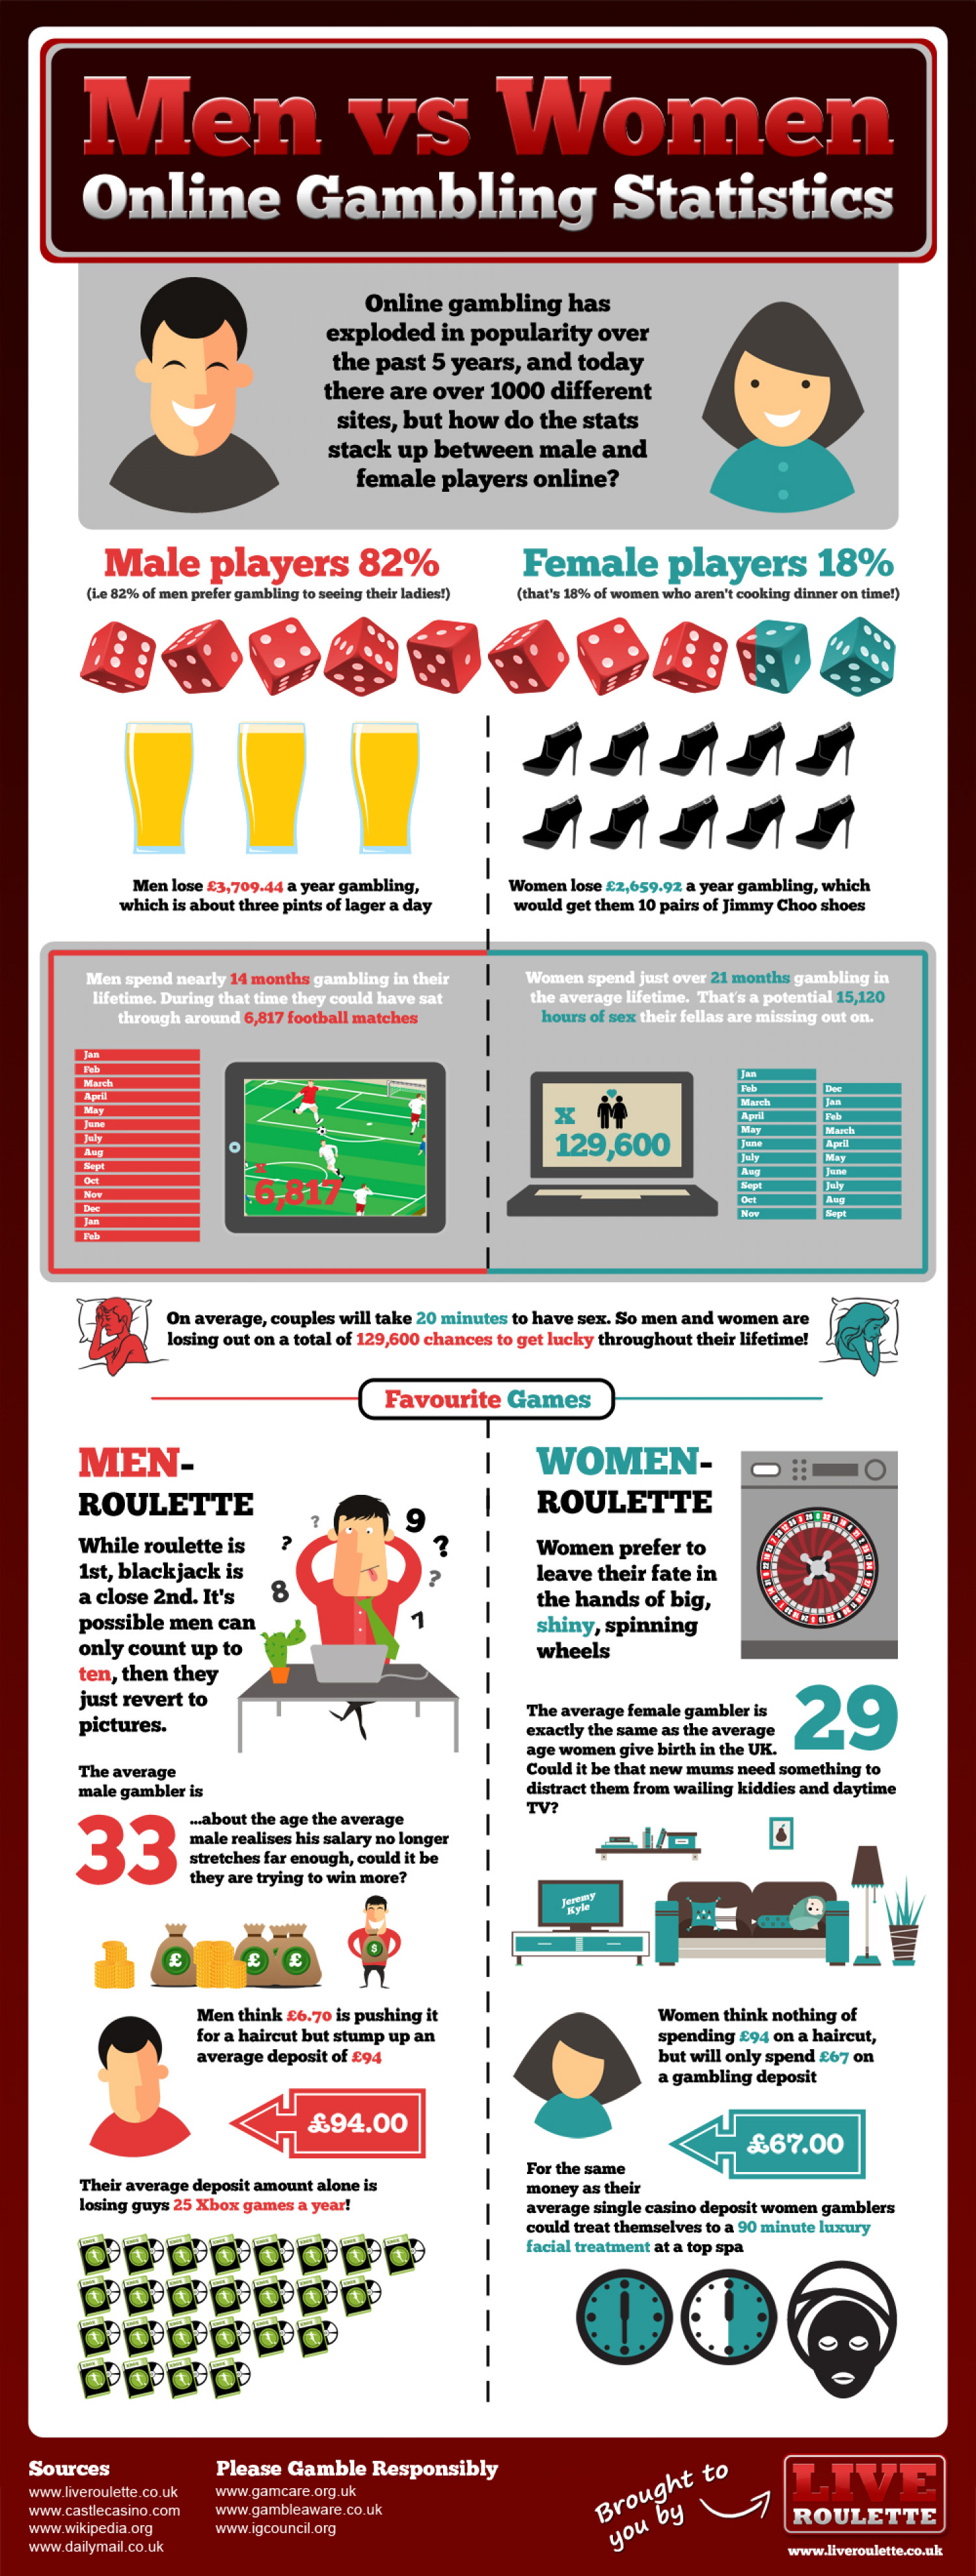 Men vs Women Online Gambling Statistics Infographic